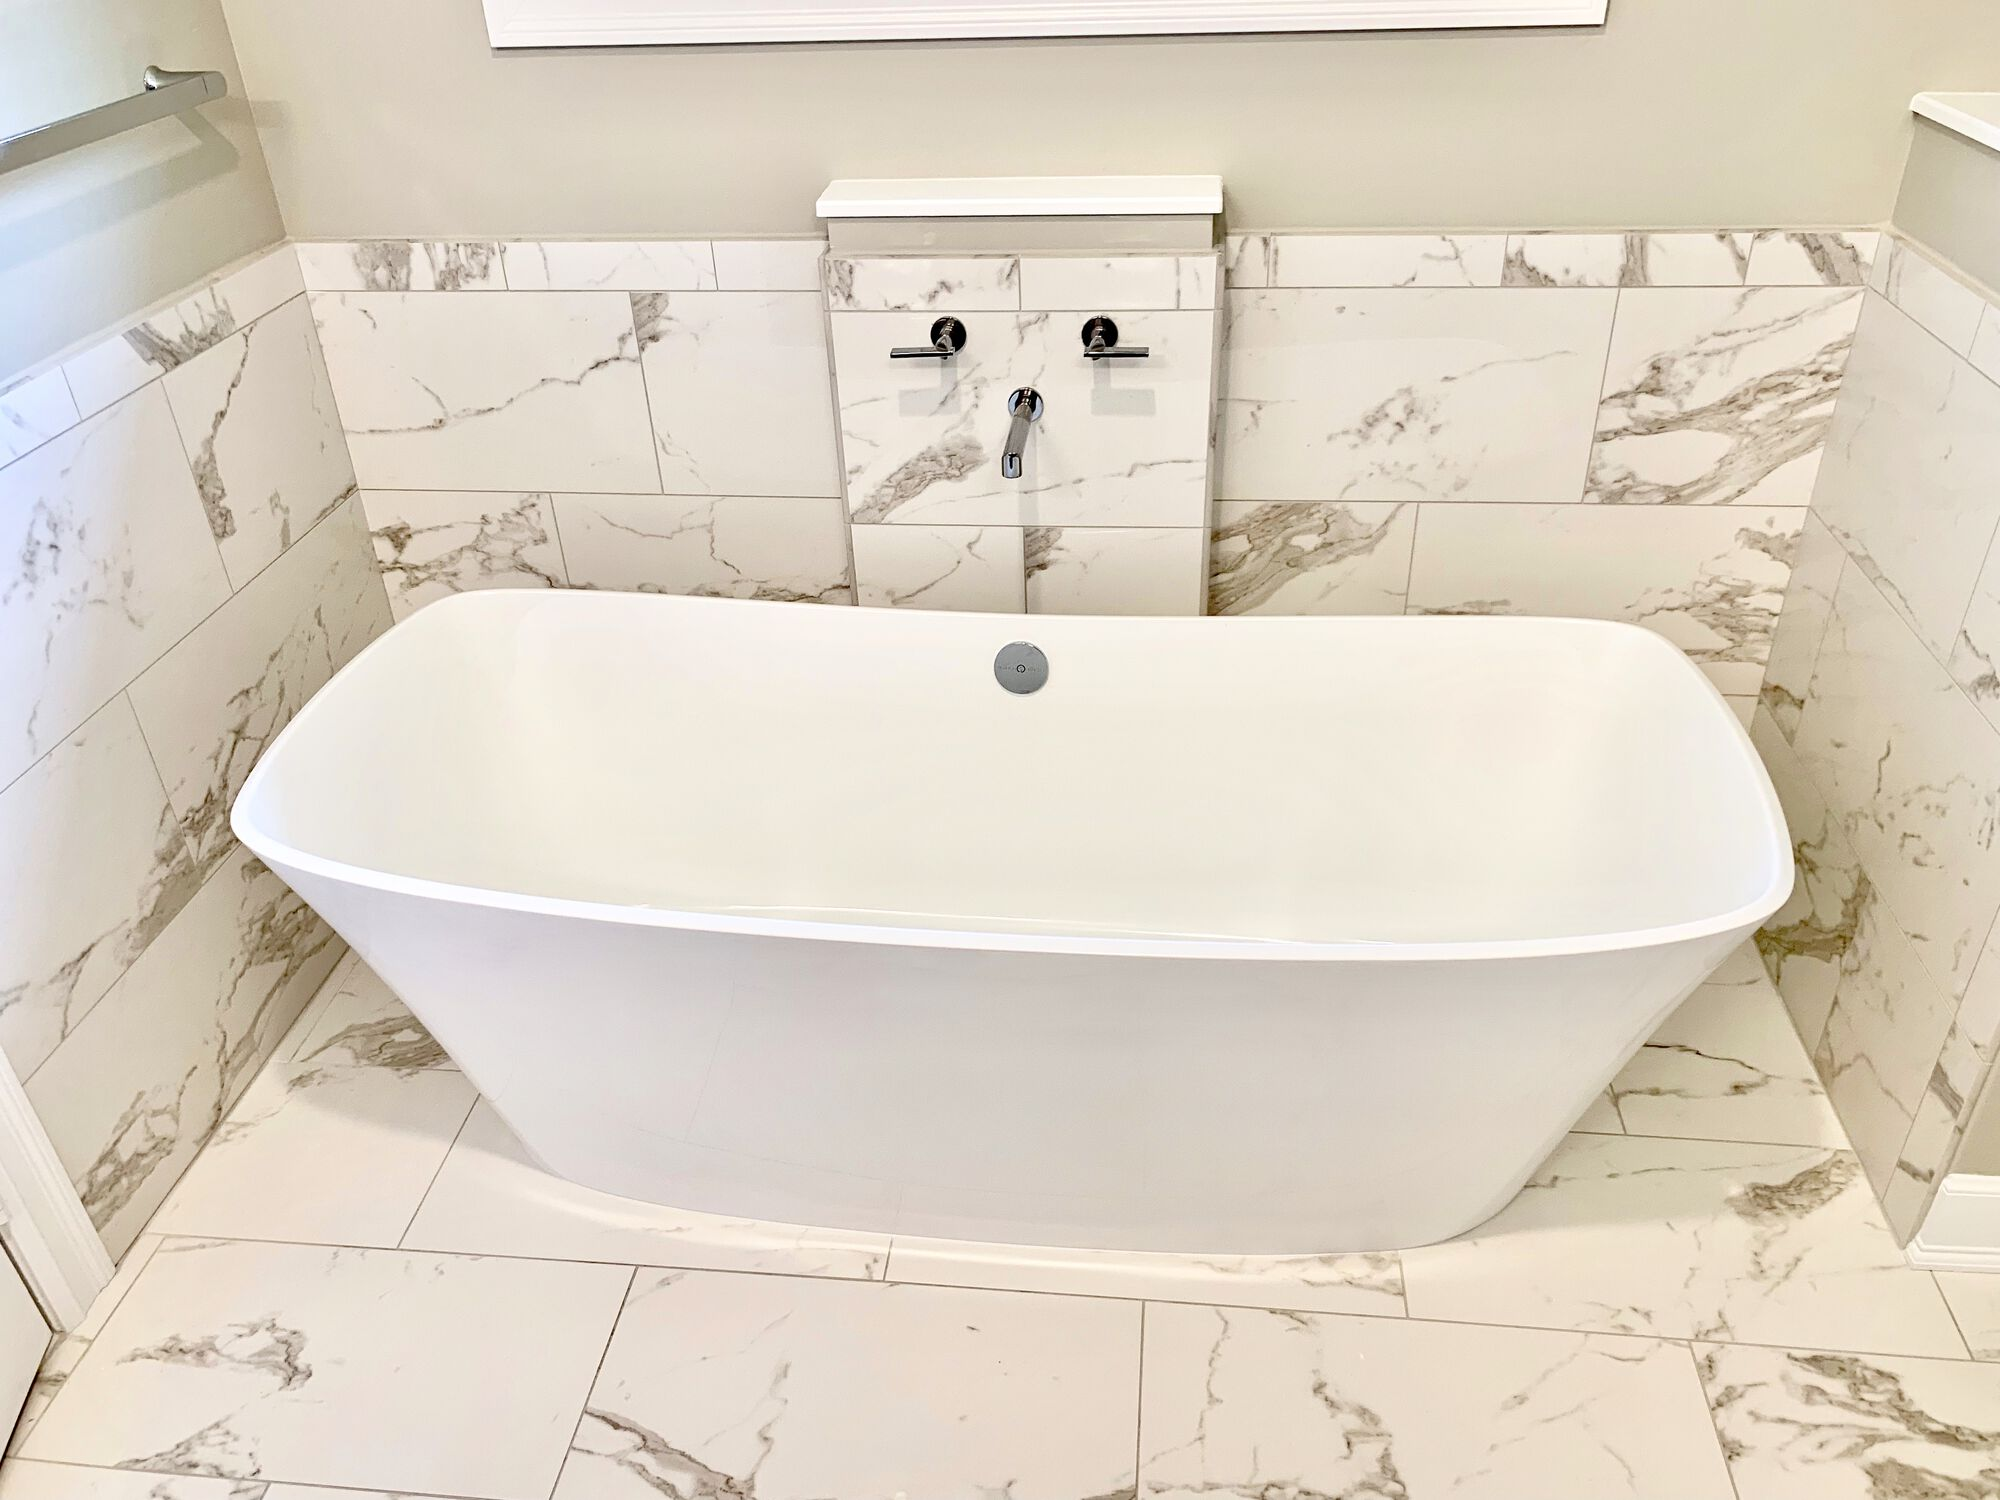 South Orange, Essex County NJ Soaking Tub with Wall Mounted Faucet, Porcelain 12 x 24 Tiles in Essex County NJ